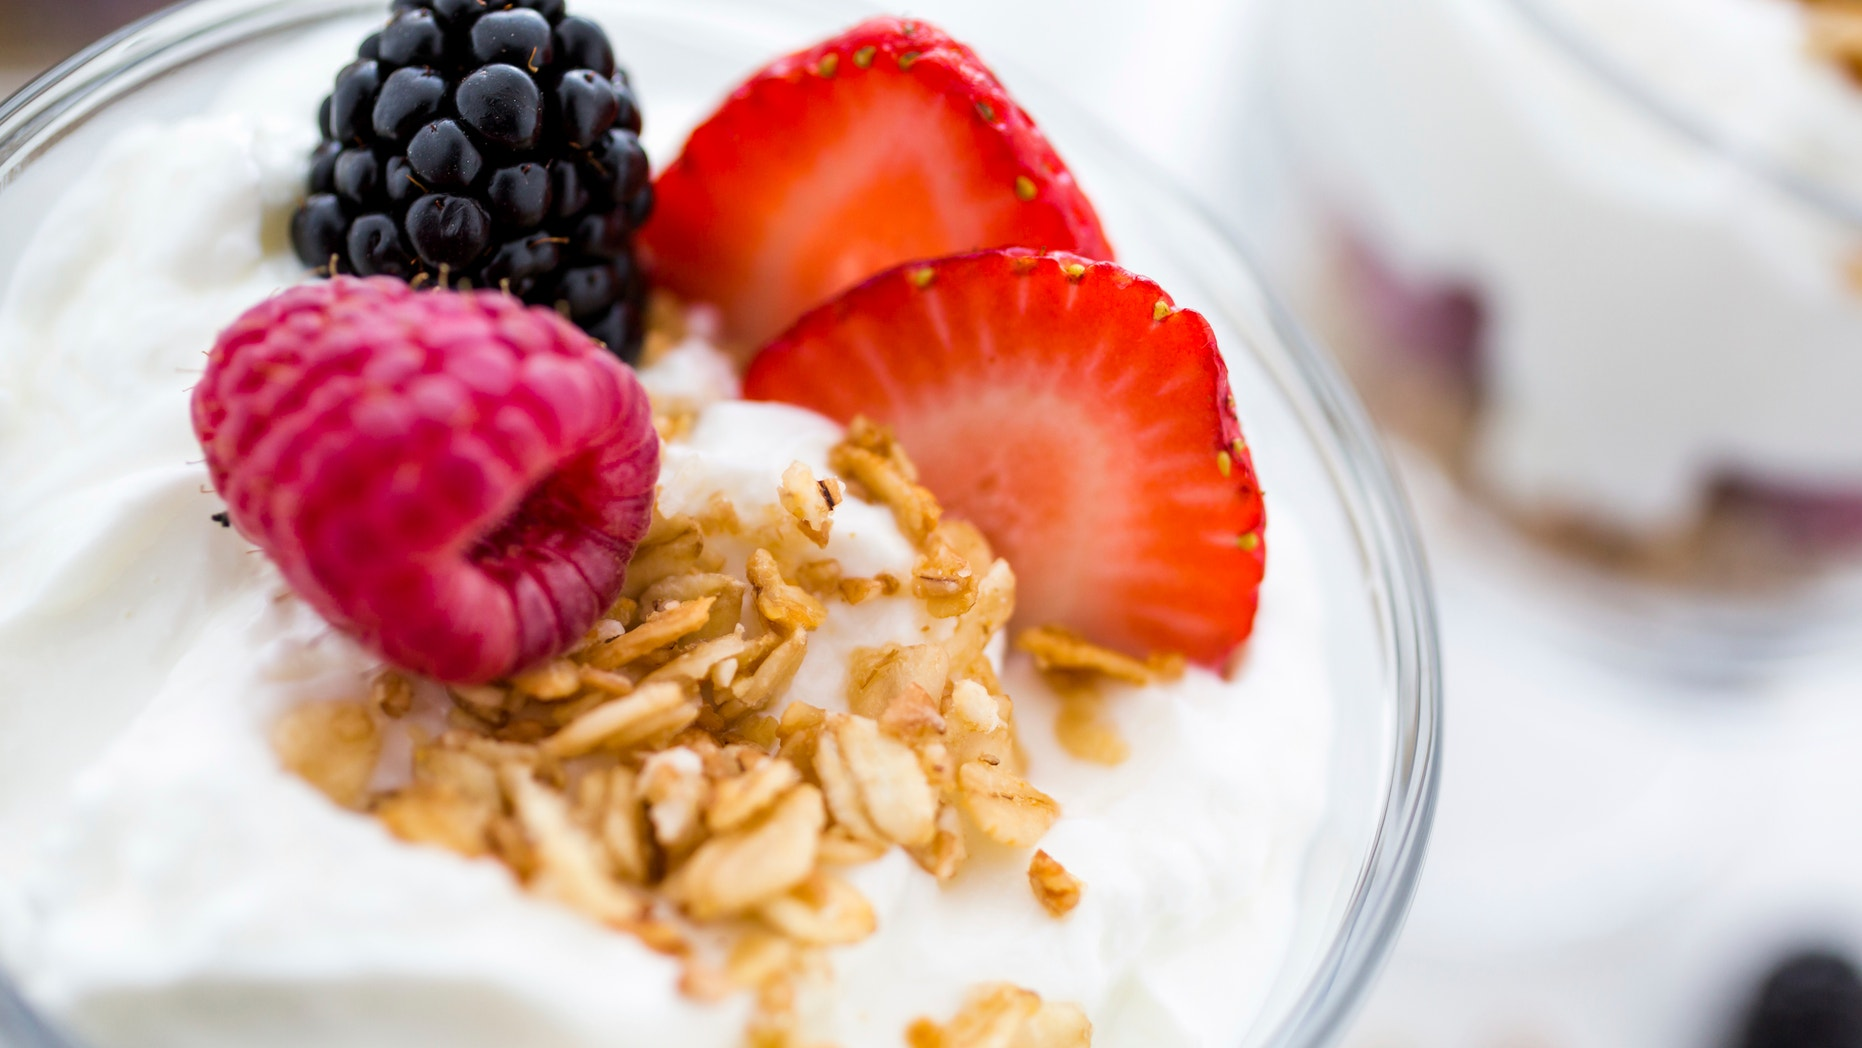 Breakfast parfait made from Greek yogurt and granola topped with fresh berries.